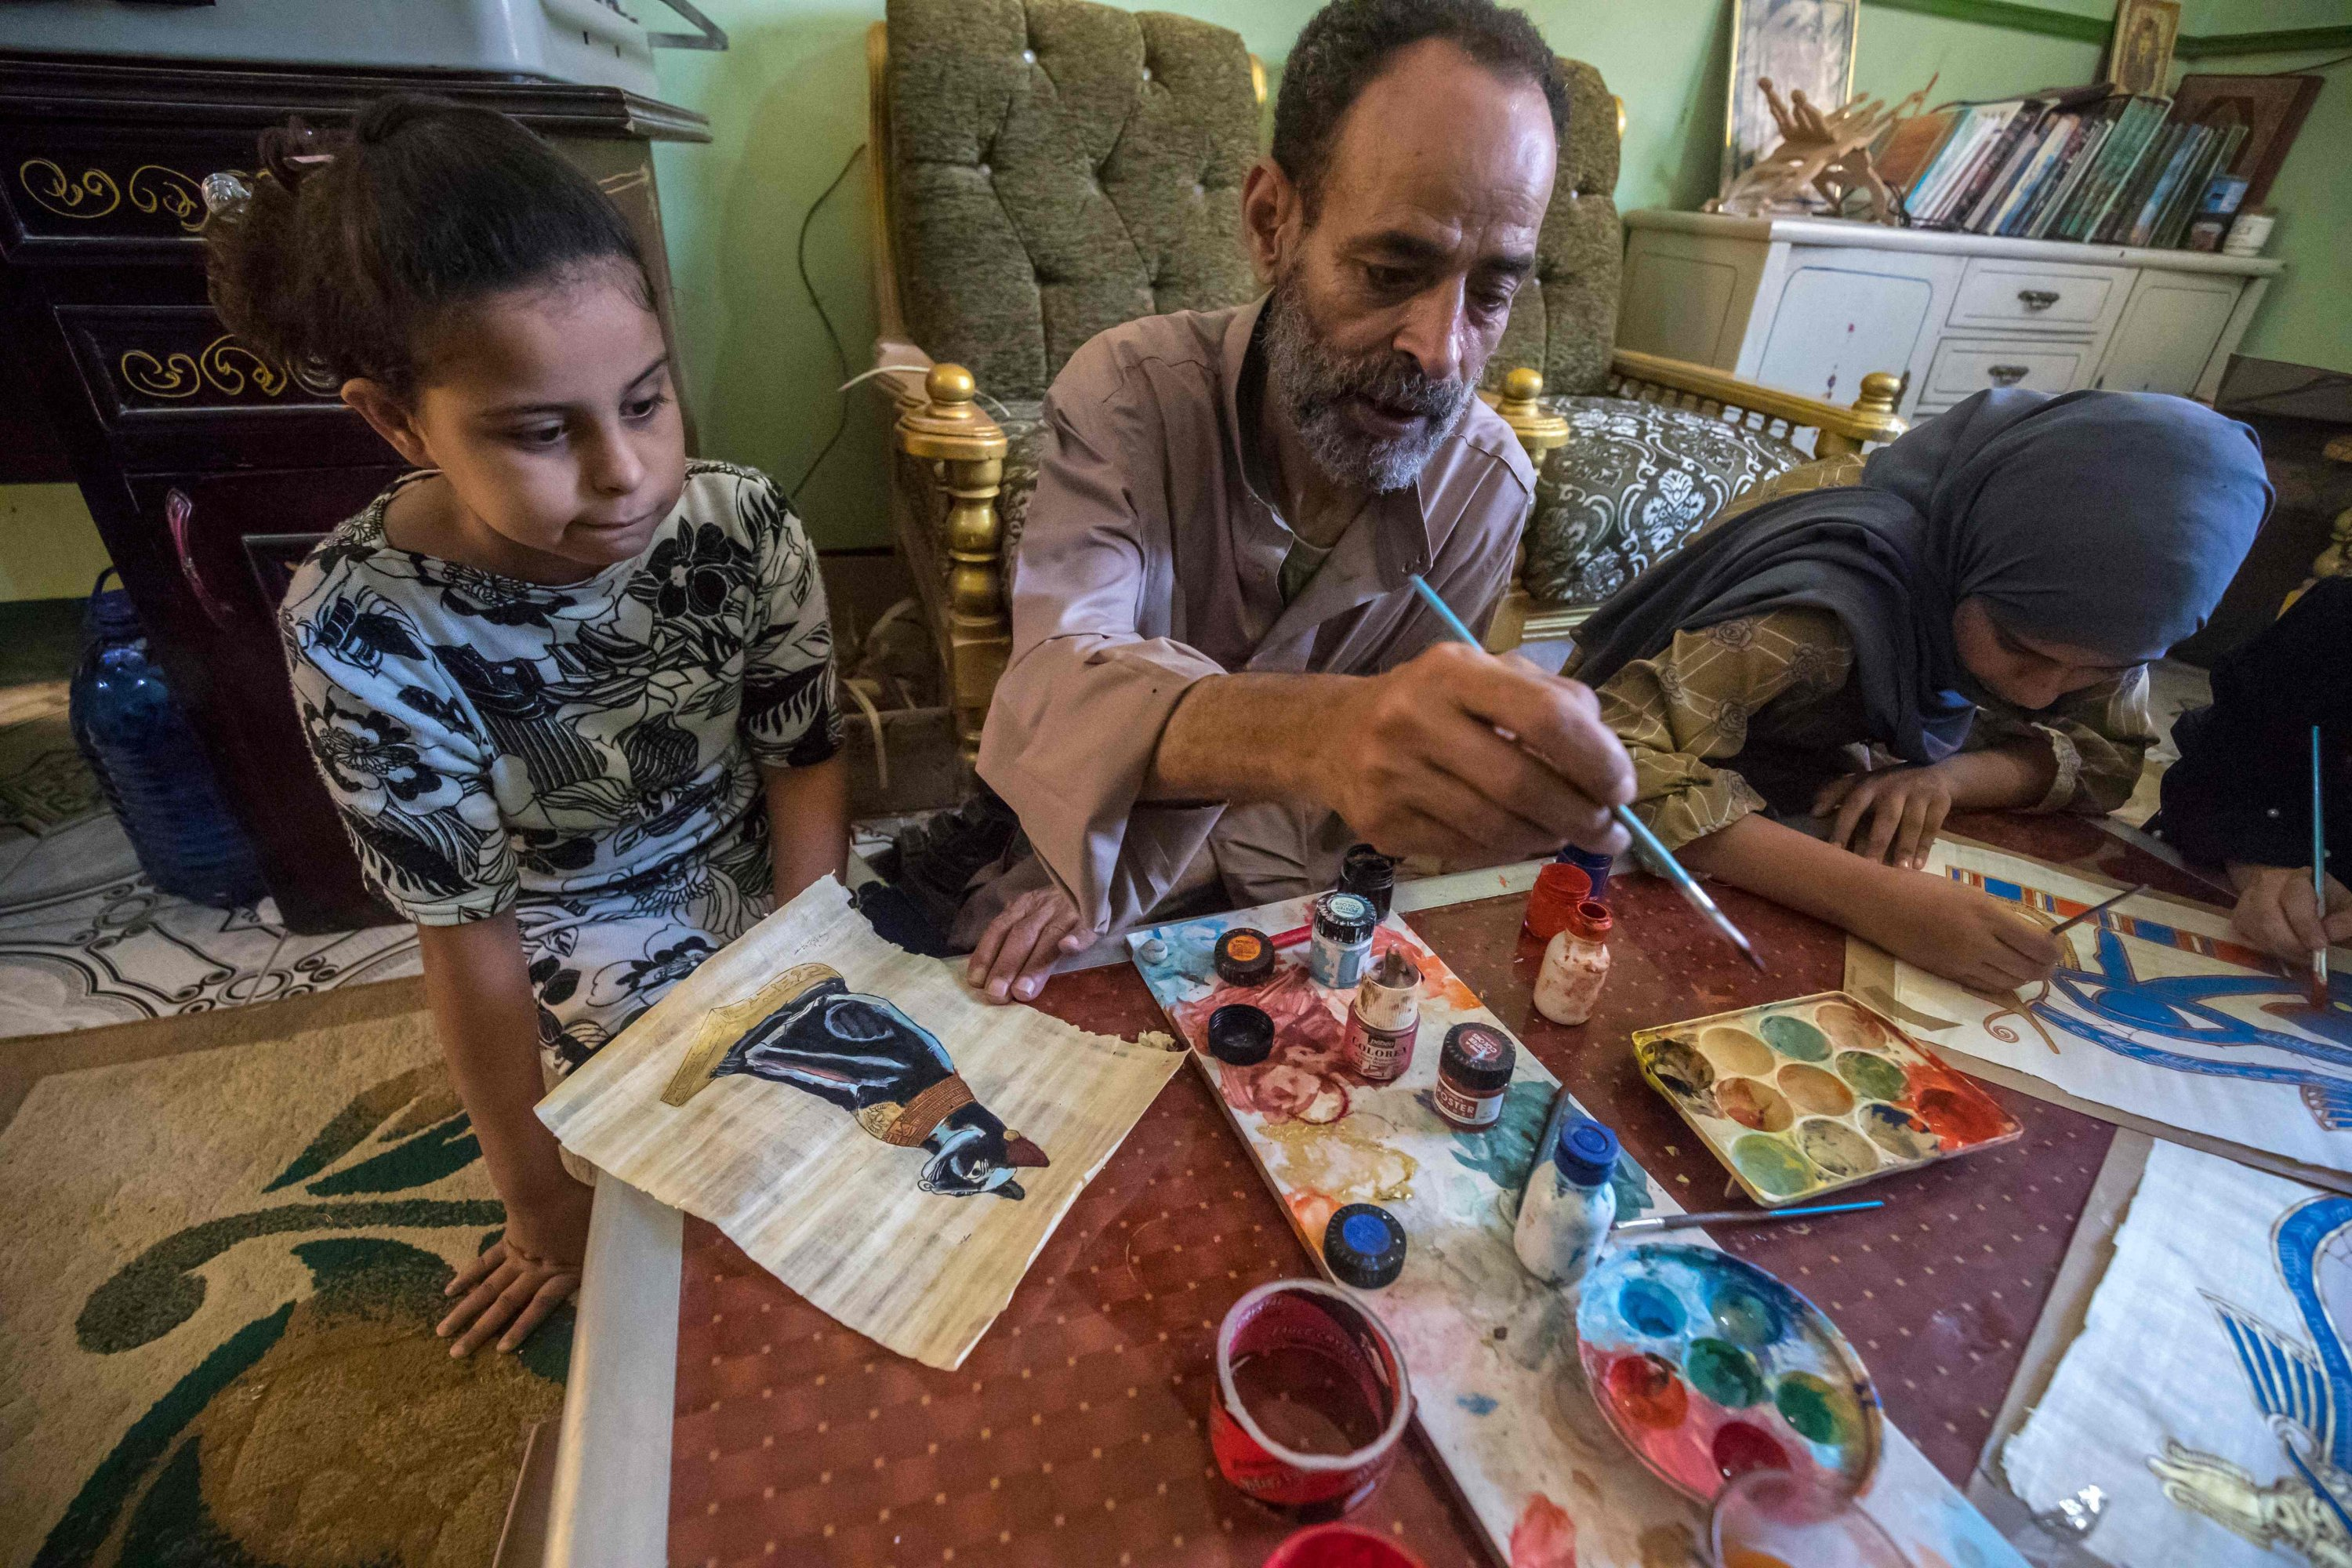 Farmer and painter Said Tarakhan, 60, draws on papyrus sheets at home in the village of al-Qaramous in Sharqiyah province, in Egypt's northern fertile Nile Delta region, northeast of the capital, on July 28, 2021. (AFP Photo)